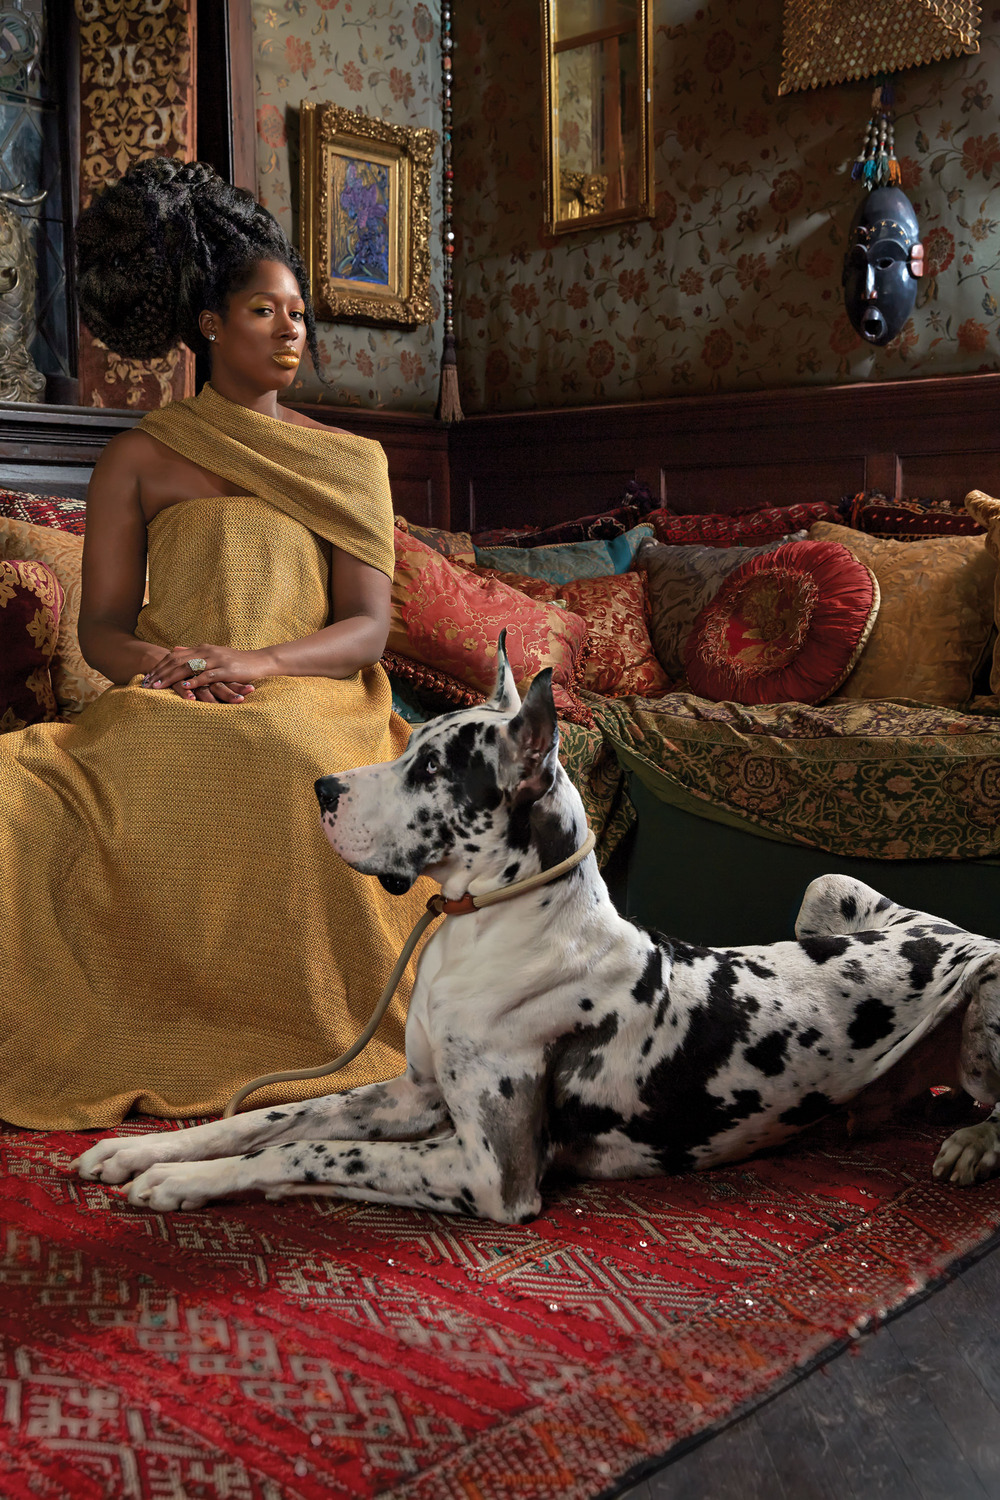 Photo by Kehinde Wiley and New York Magazine